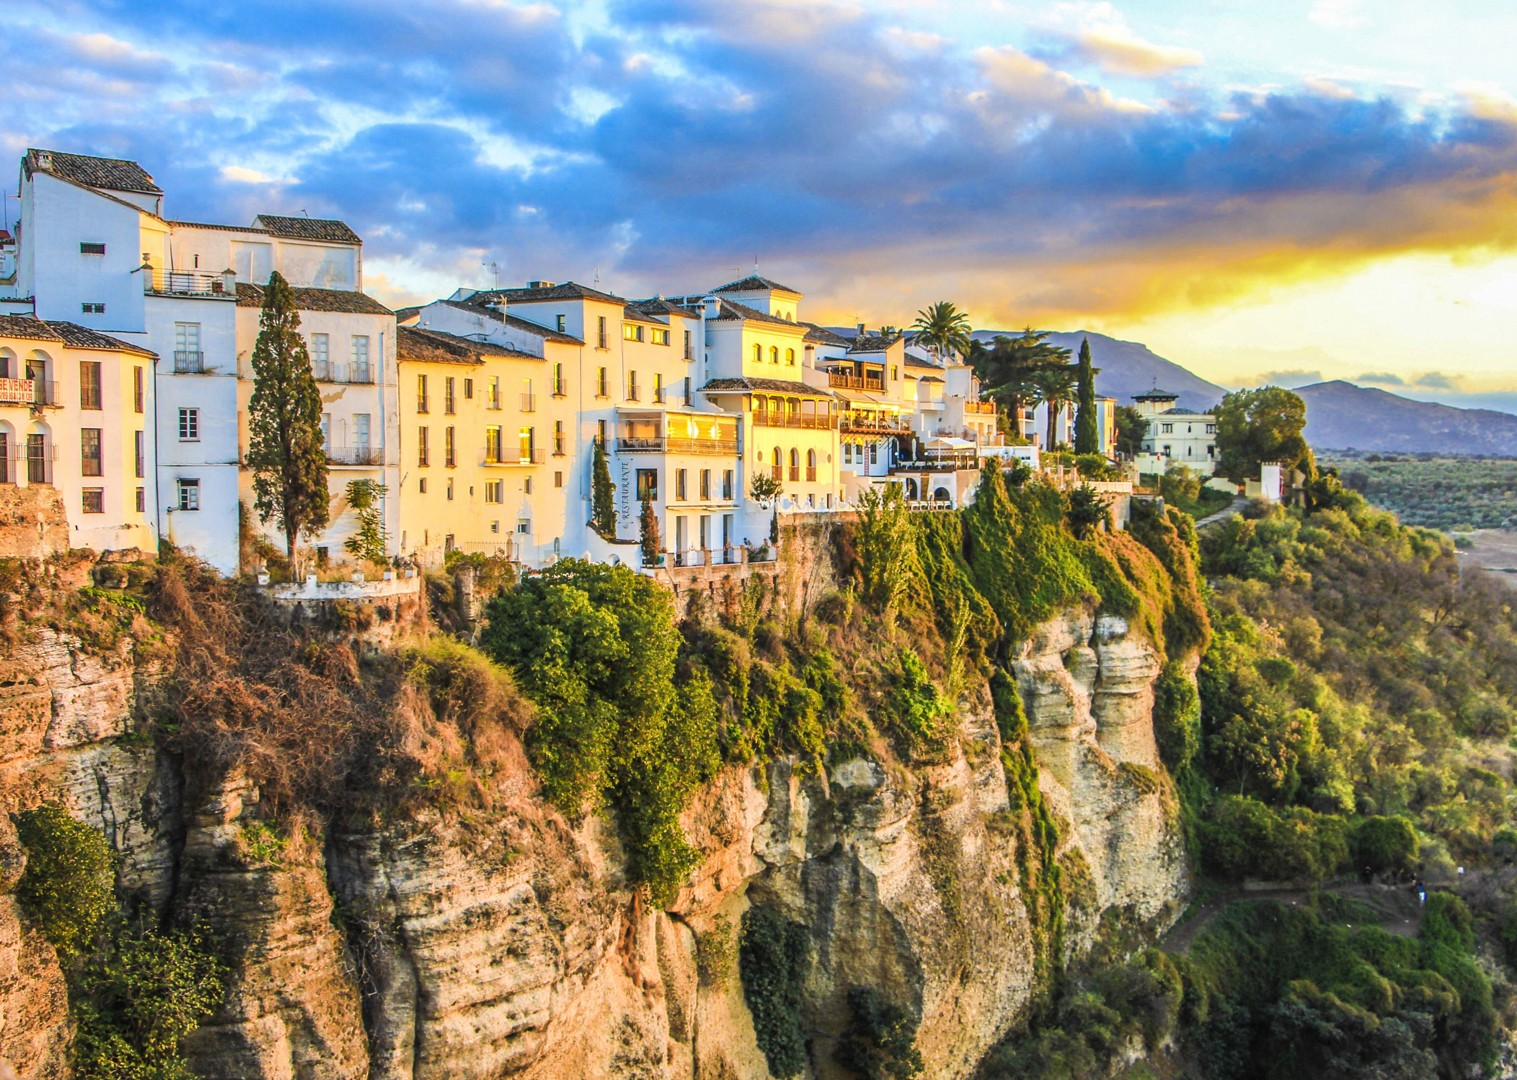 puente-nuevo-spain-cycling-tour-skedaddle.jpg - Southern Spain - Roads of Ronda - Self-Guided Road Cycling Holiday - Road Cycling